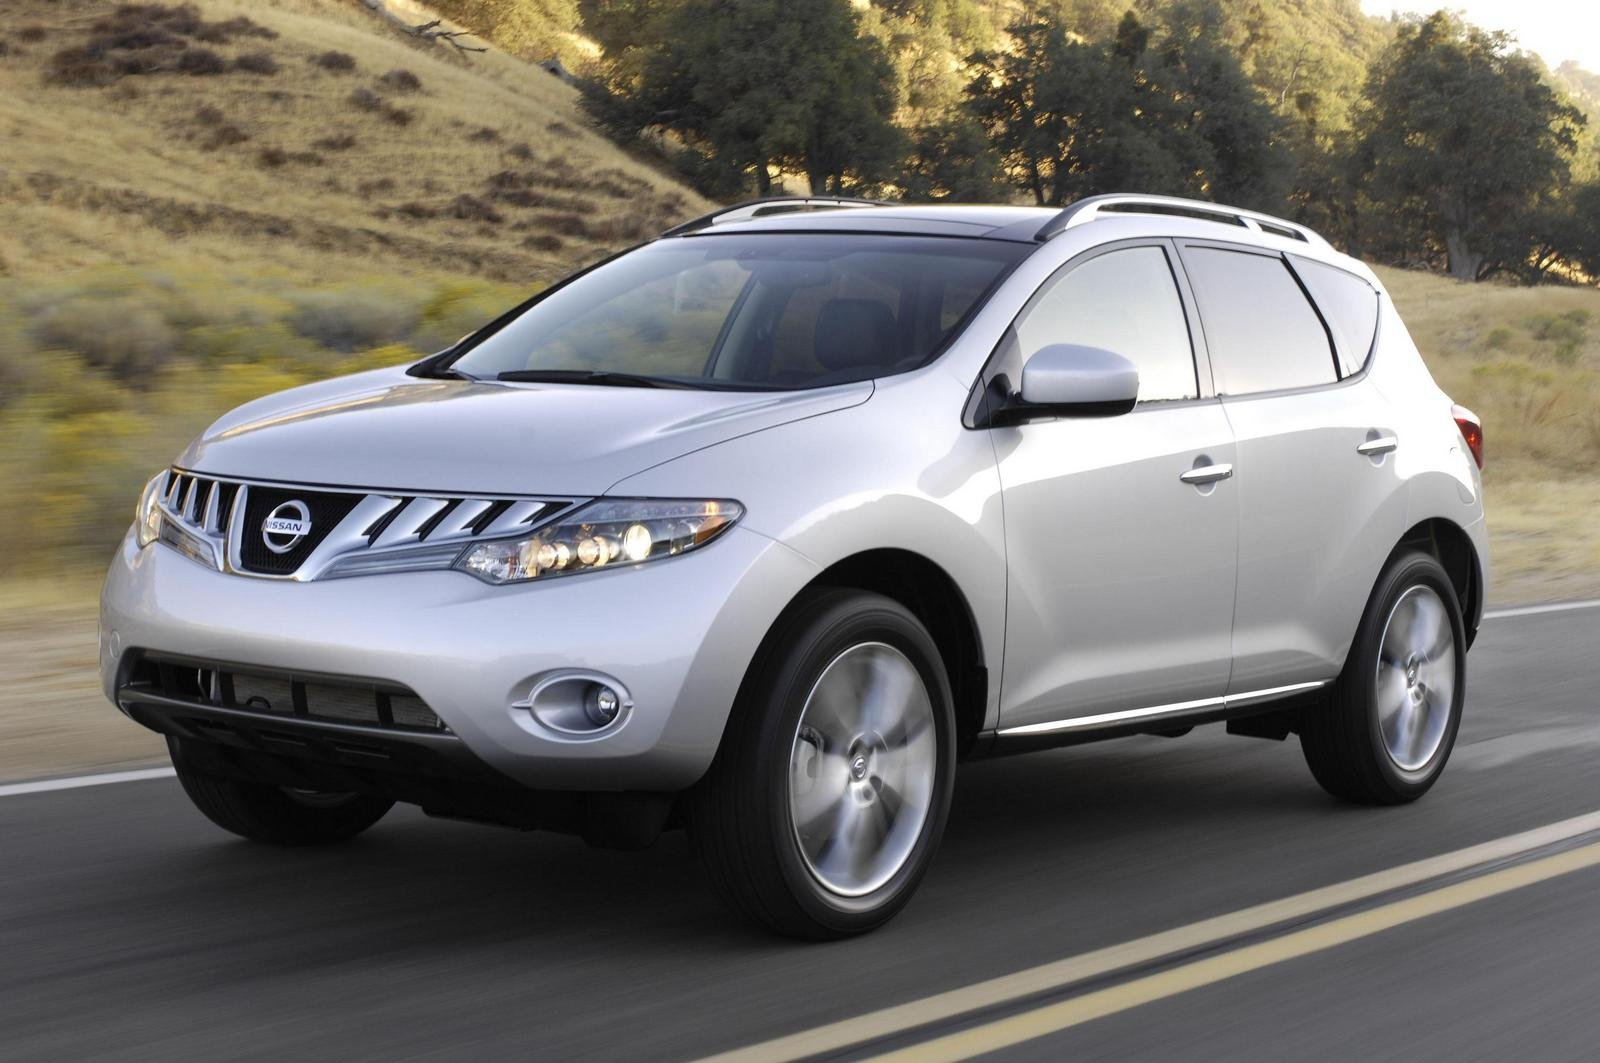 2009 nissan murano review gallery top speed. Black Bedroom Furniture Sets. Home Design Ideas